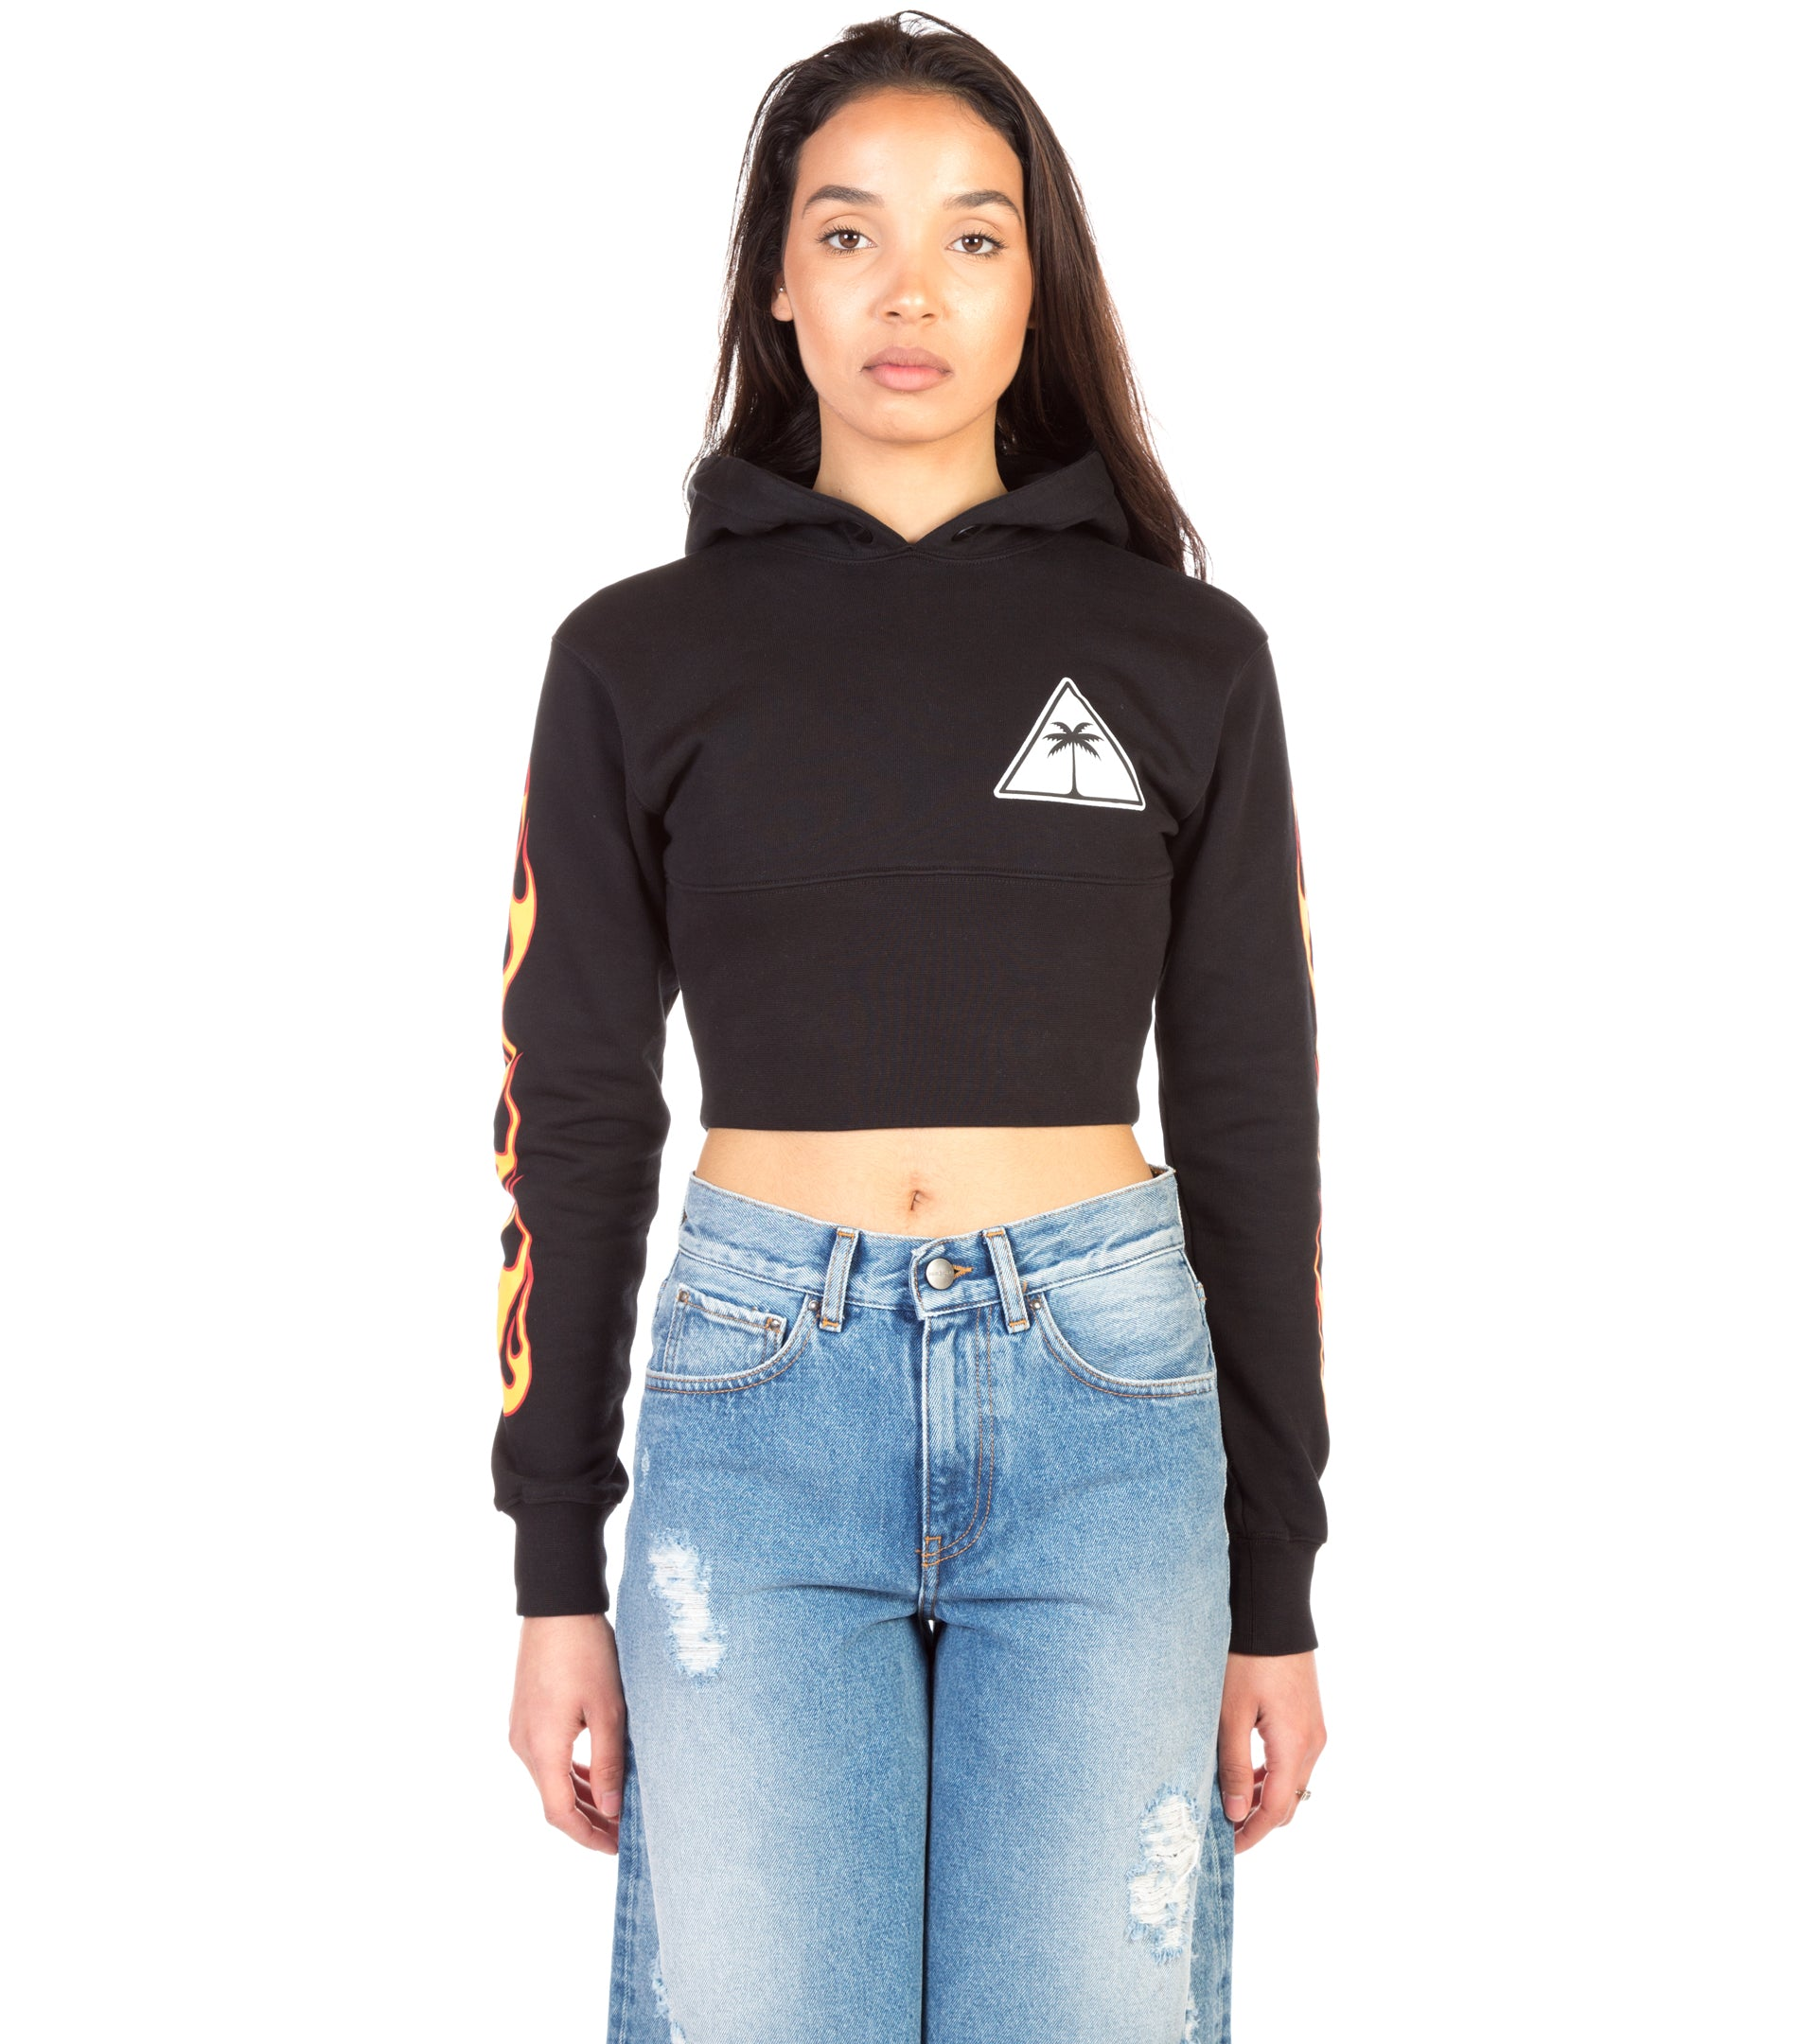 PALMS AND FLAMES CROPPED HOODIE